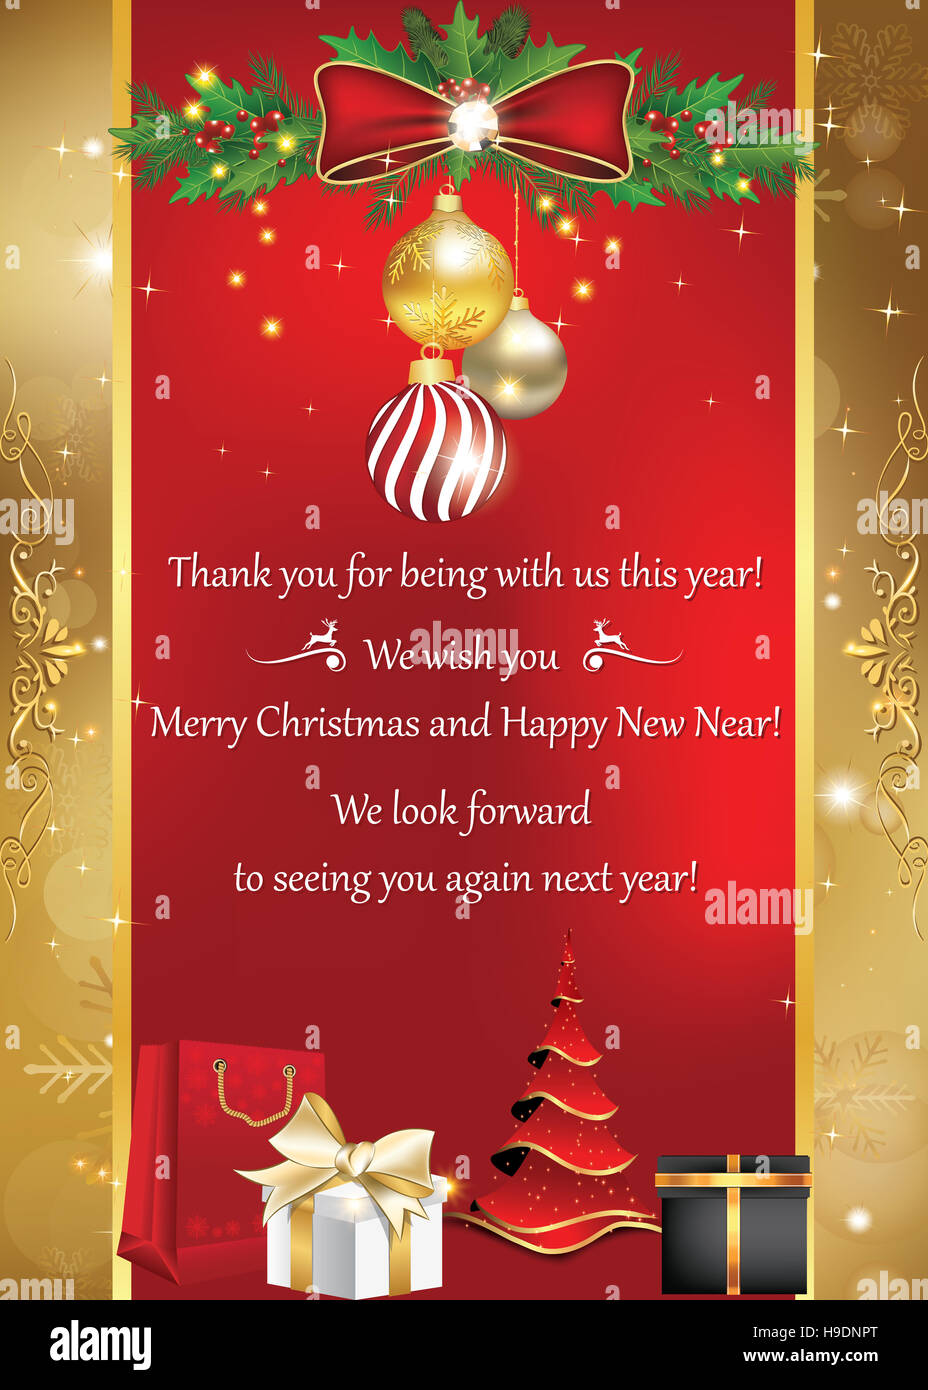 Business card for winter holidays. Thank you for being with us this ...